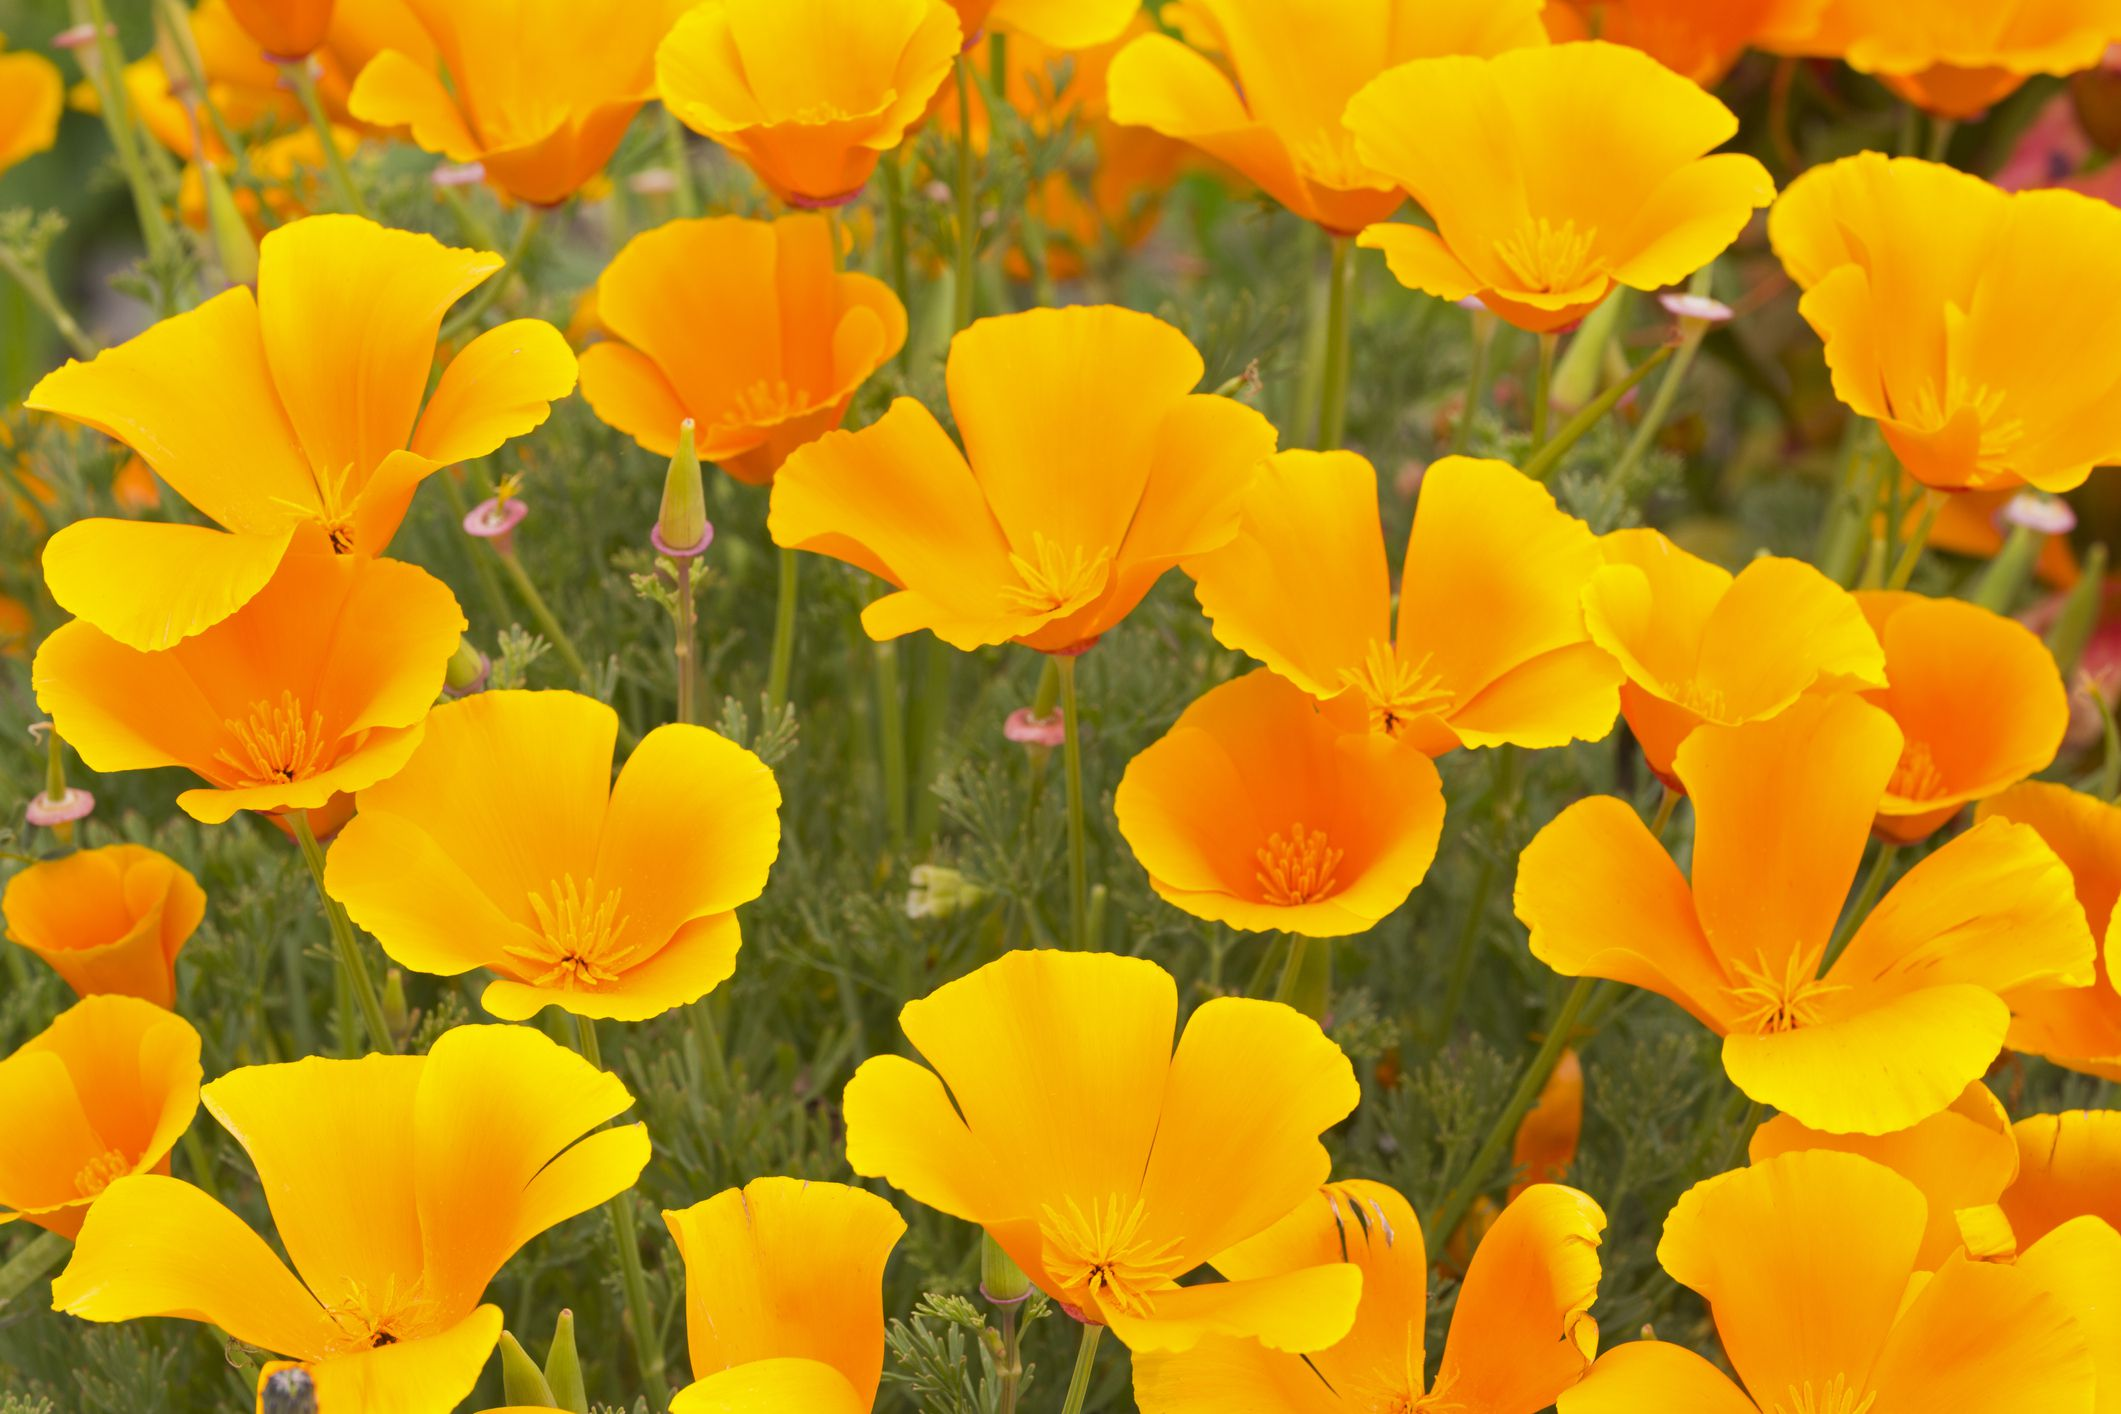 How To Grow And Care For California Poppies